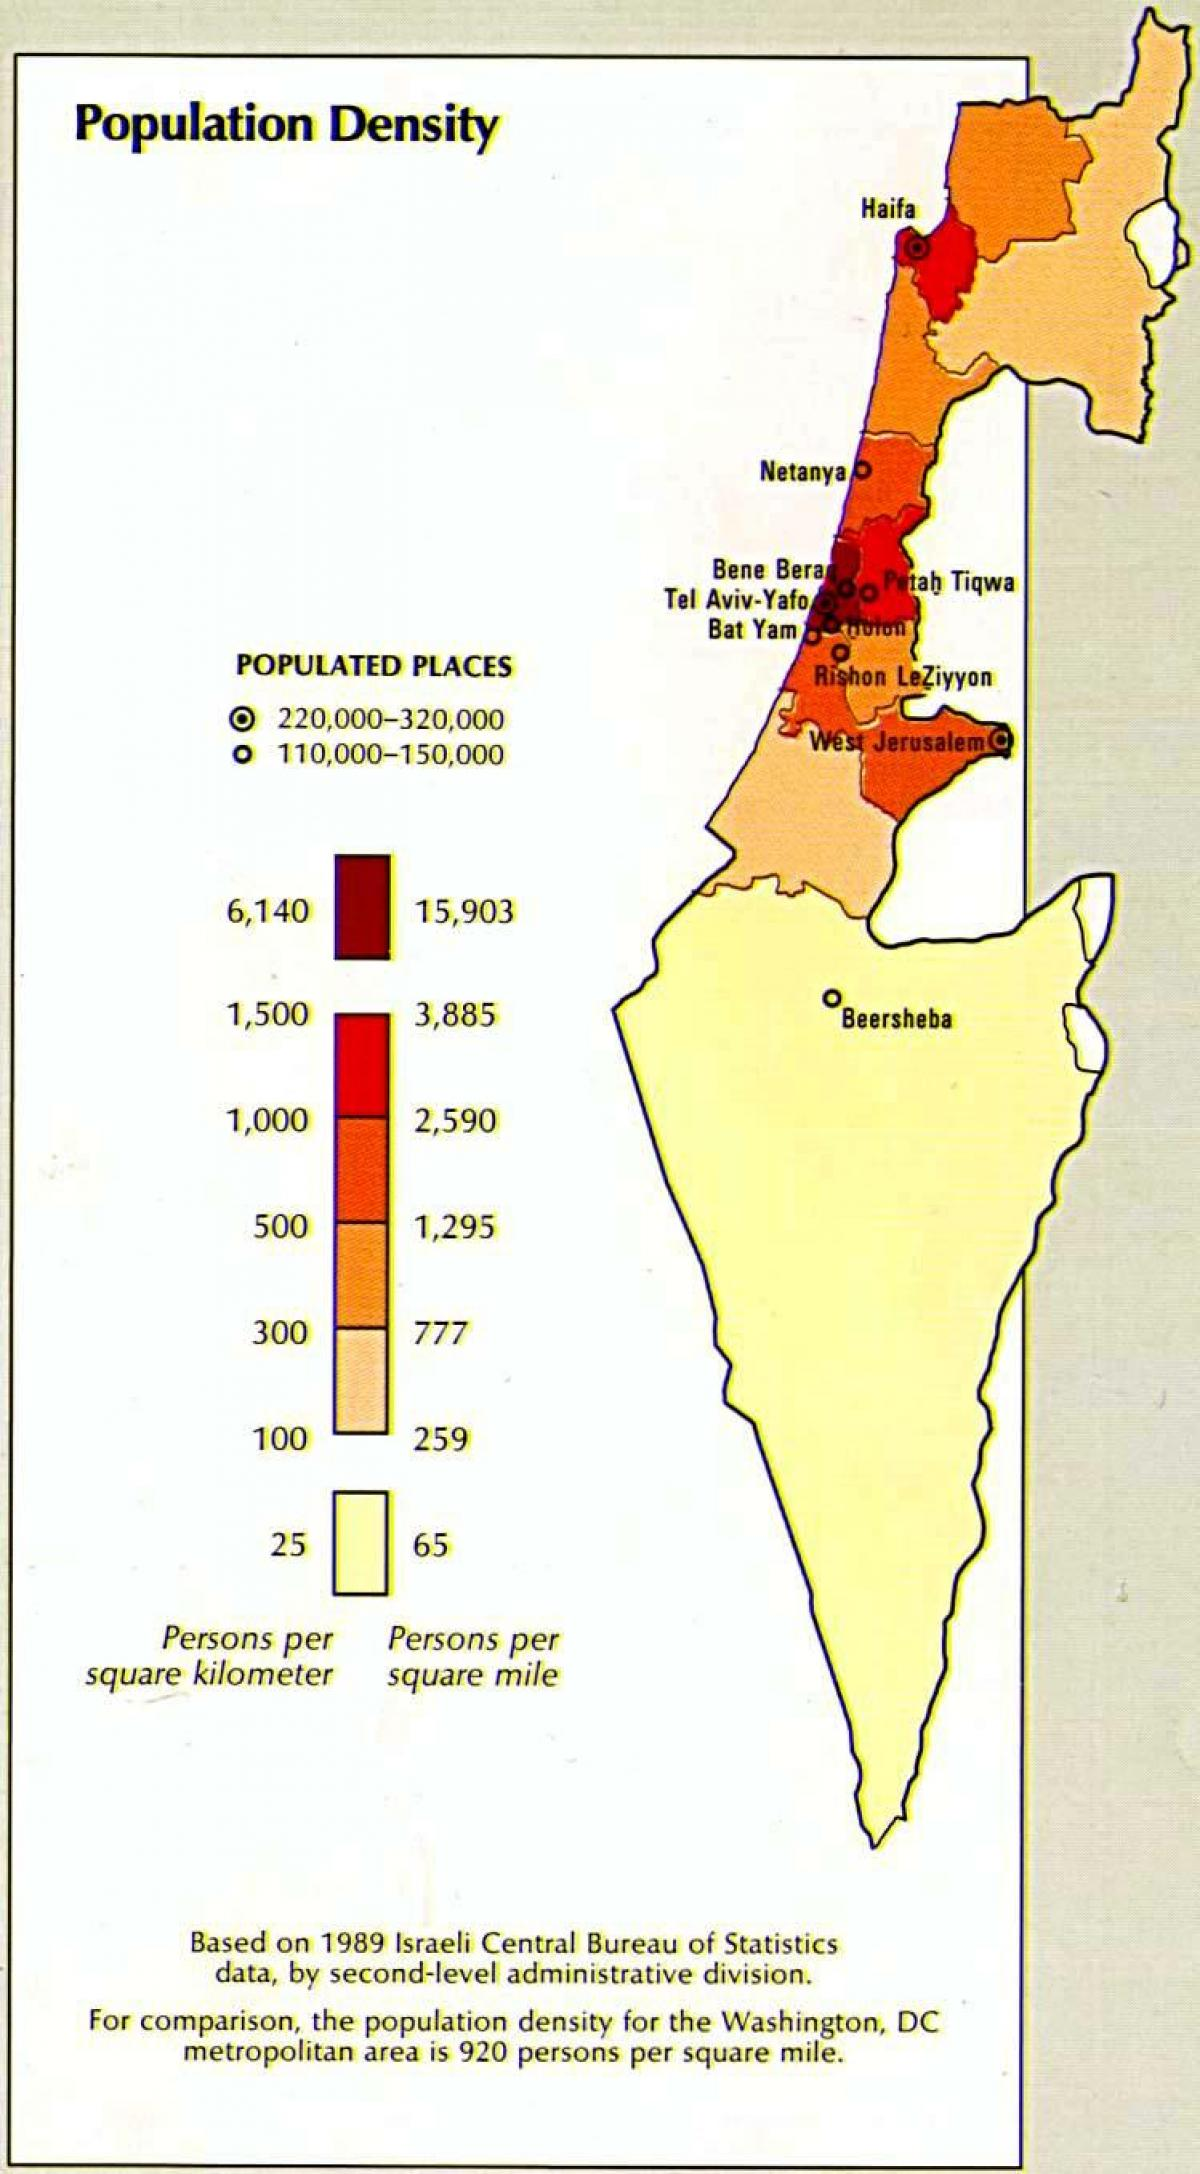 map of israel population